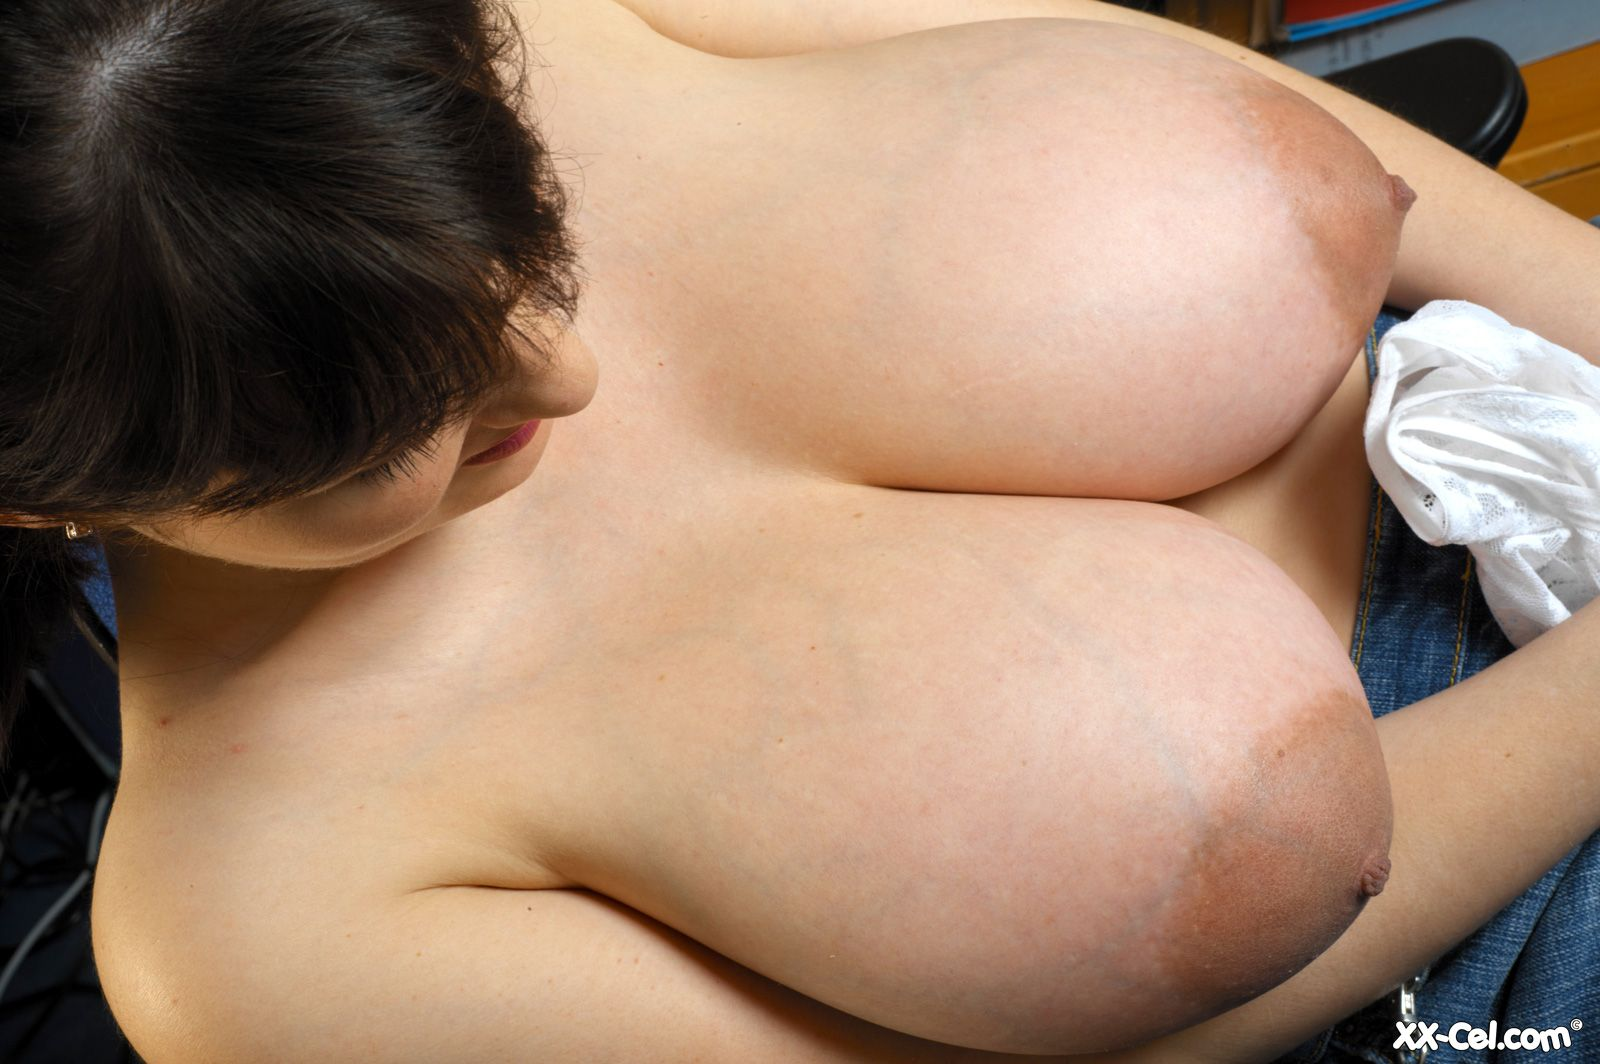 Enormous breasts with huge lactating nipples